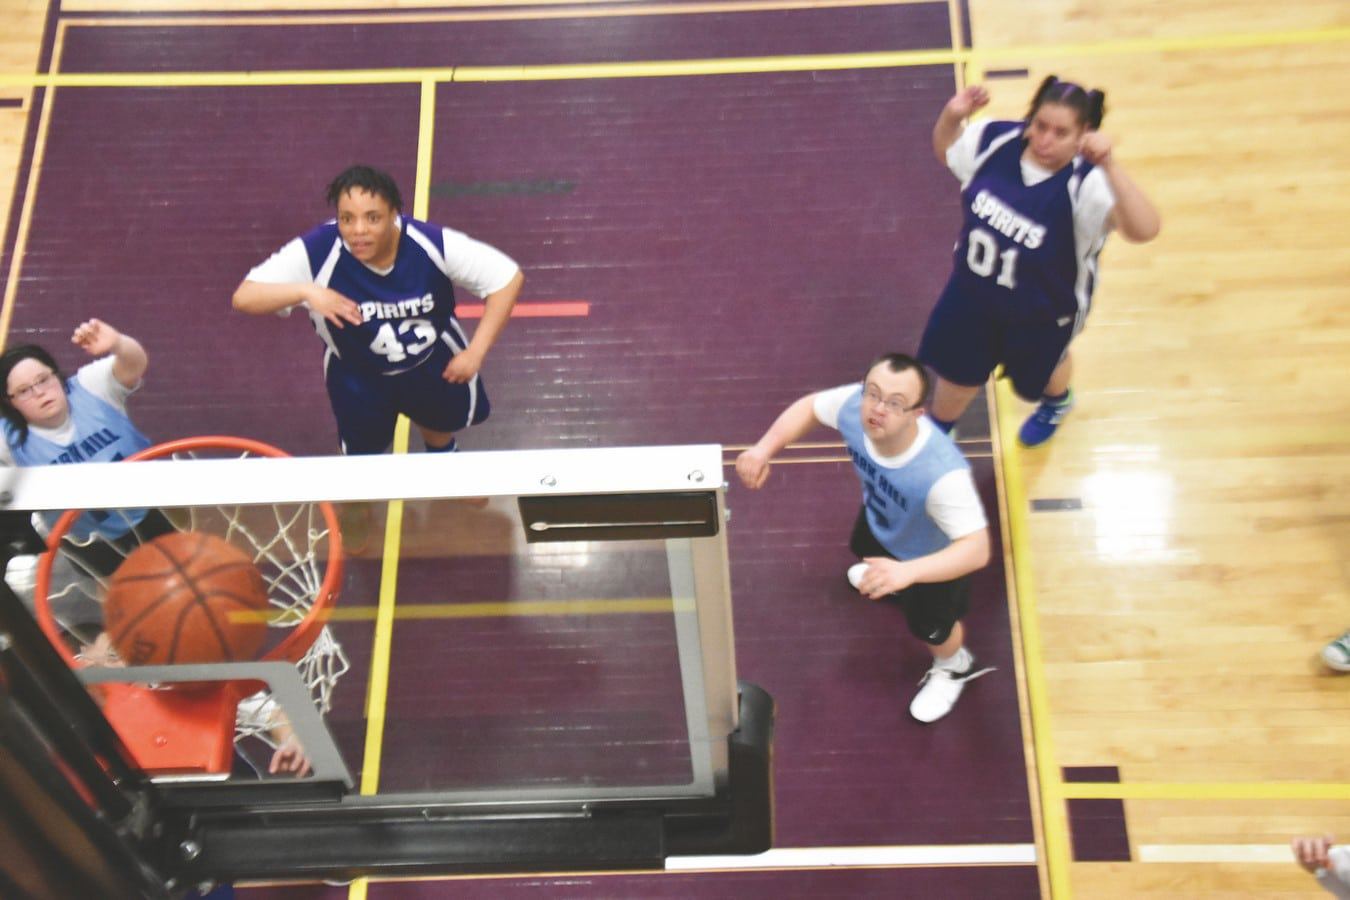 A top-down photo showing athletes on a basketball court watching the ball go into the hoop